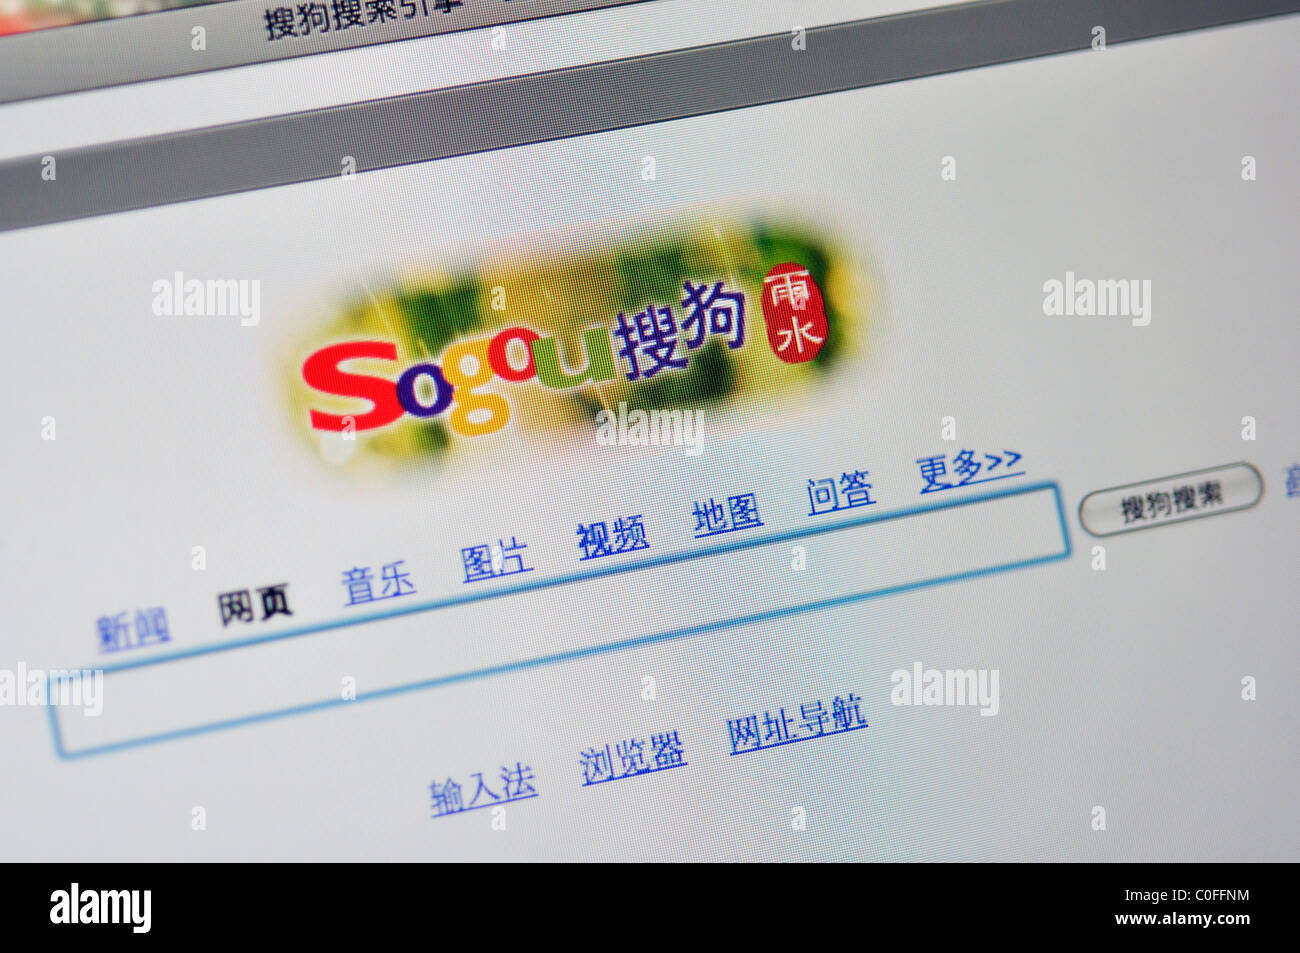 Sogou - Chinese search engine website - Stock Image